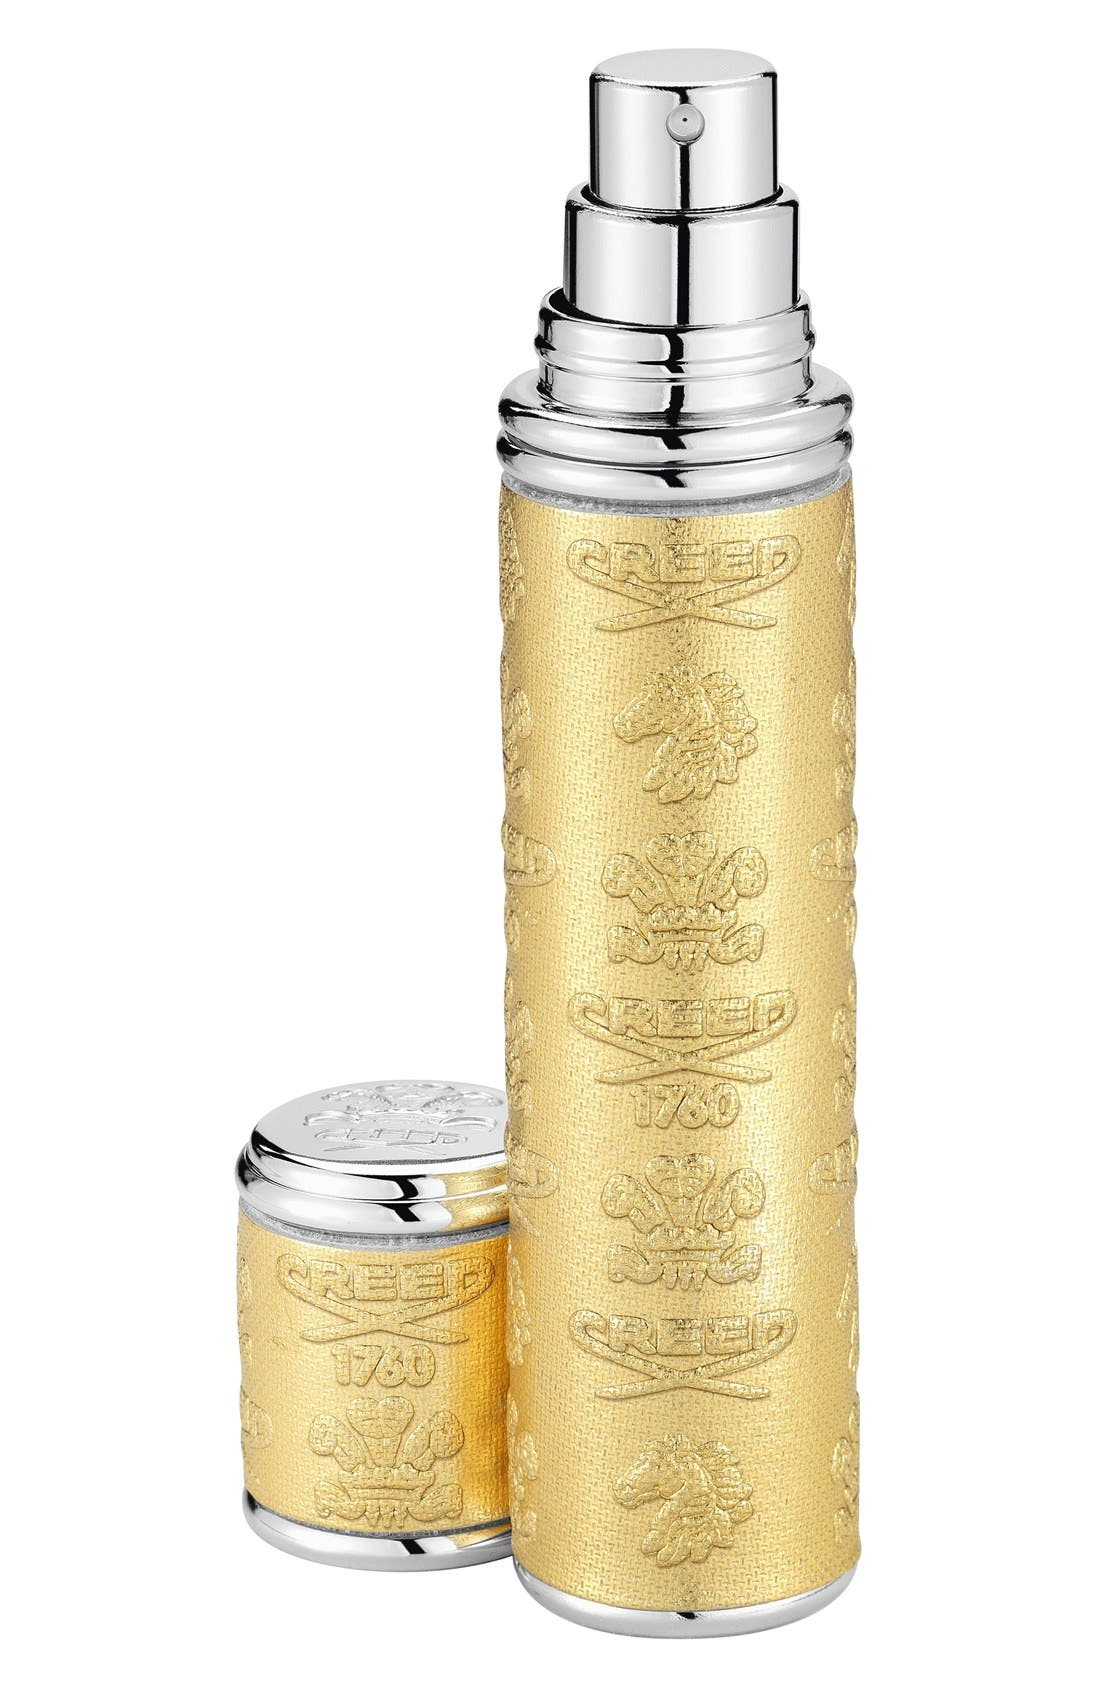 Creed Silver Leather With Gold Trim Pocket Atomizer